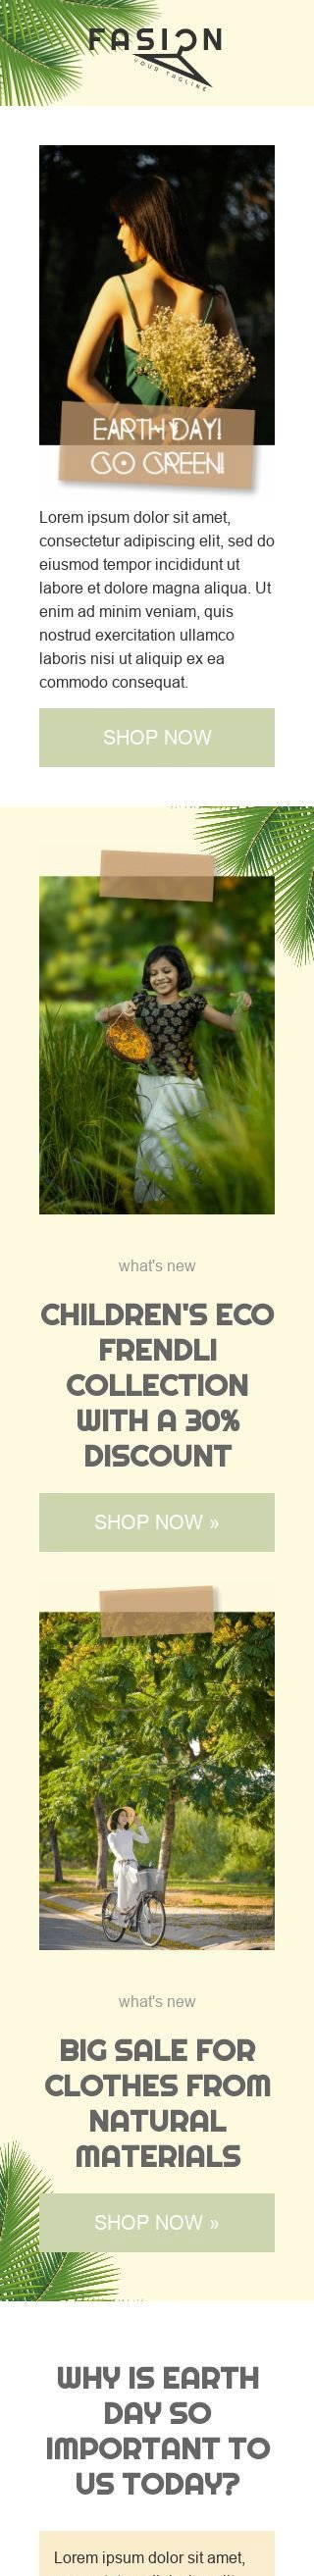 Earth Day Email Template «Go green» for Fashion industry mobile view